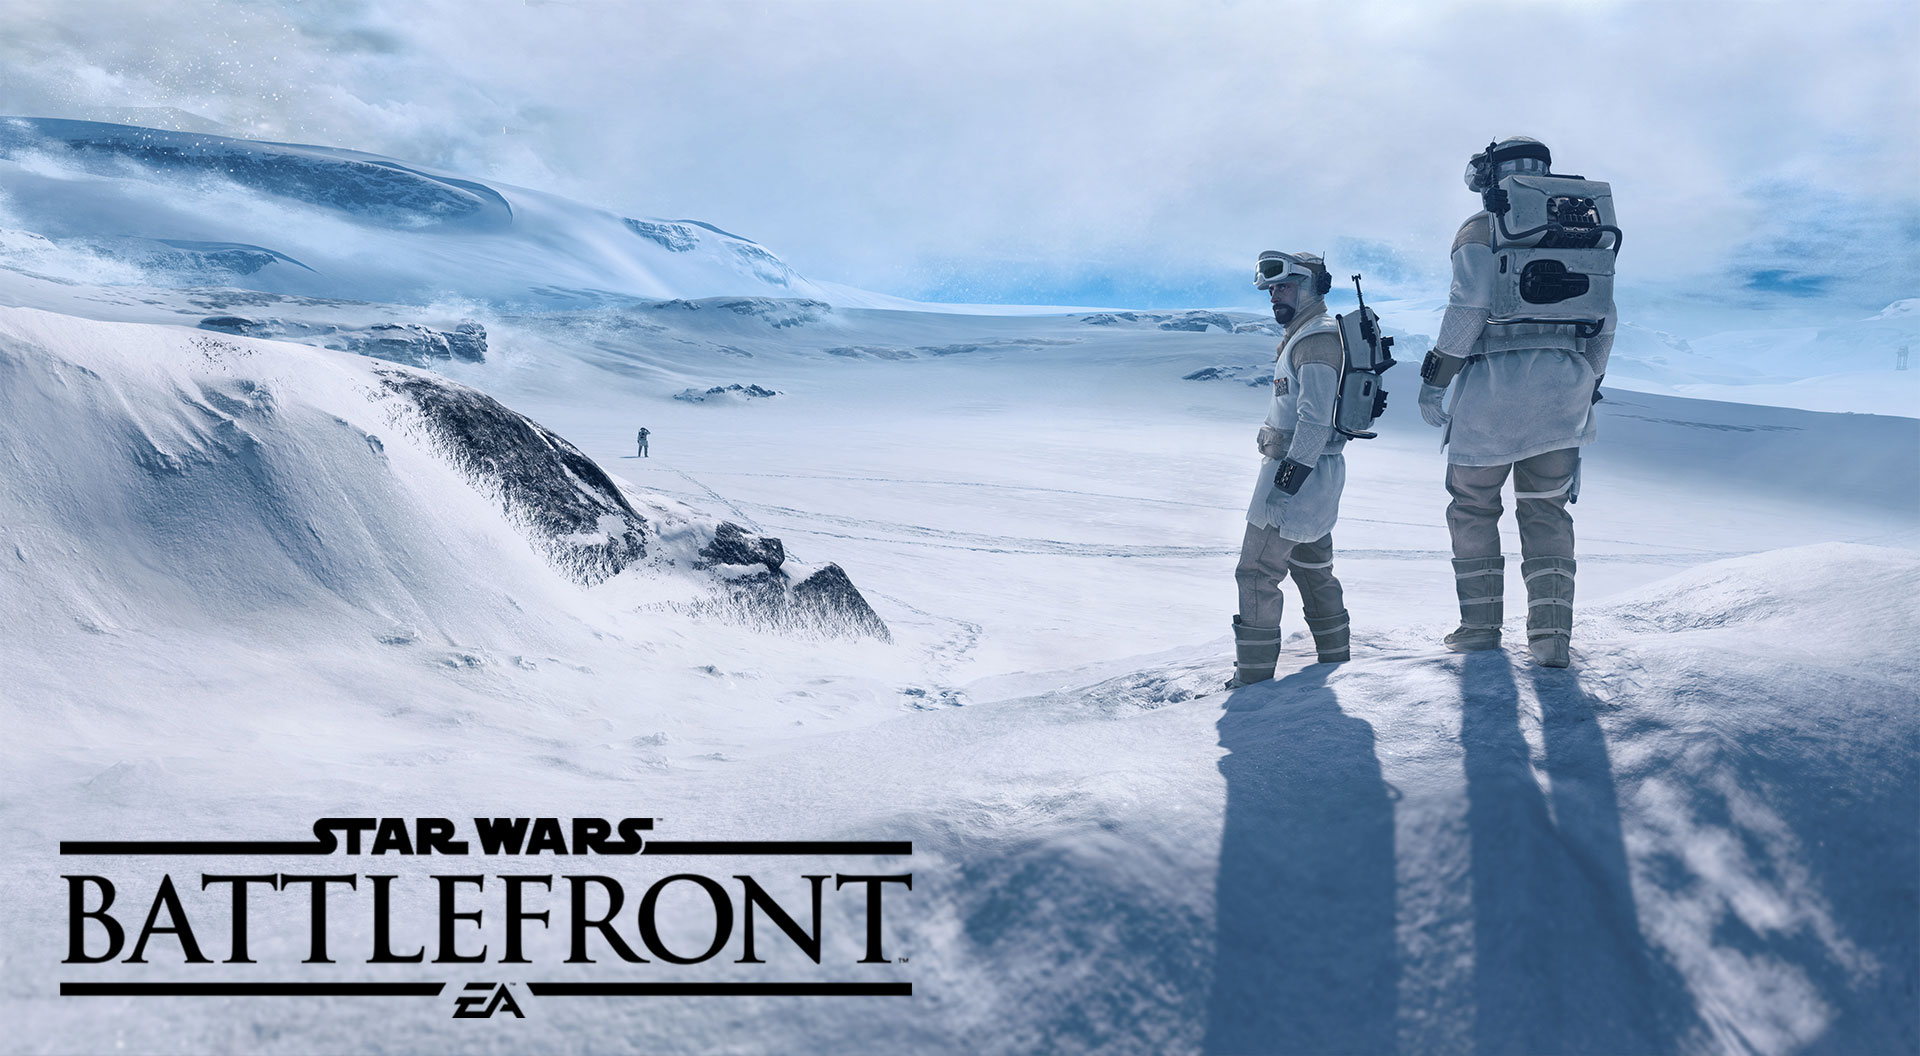 Star Wars Battlefront 2015 Wallpaper and Background Image 1920x1056